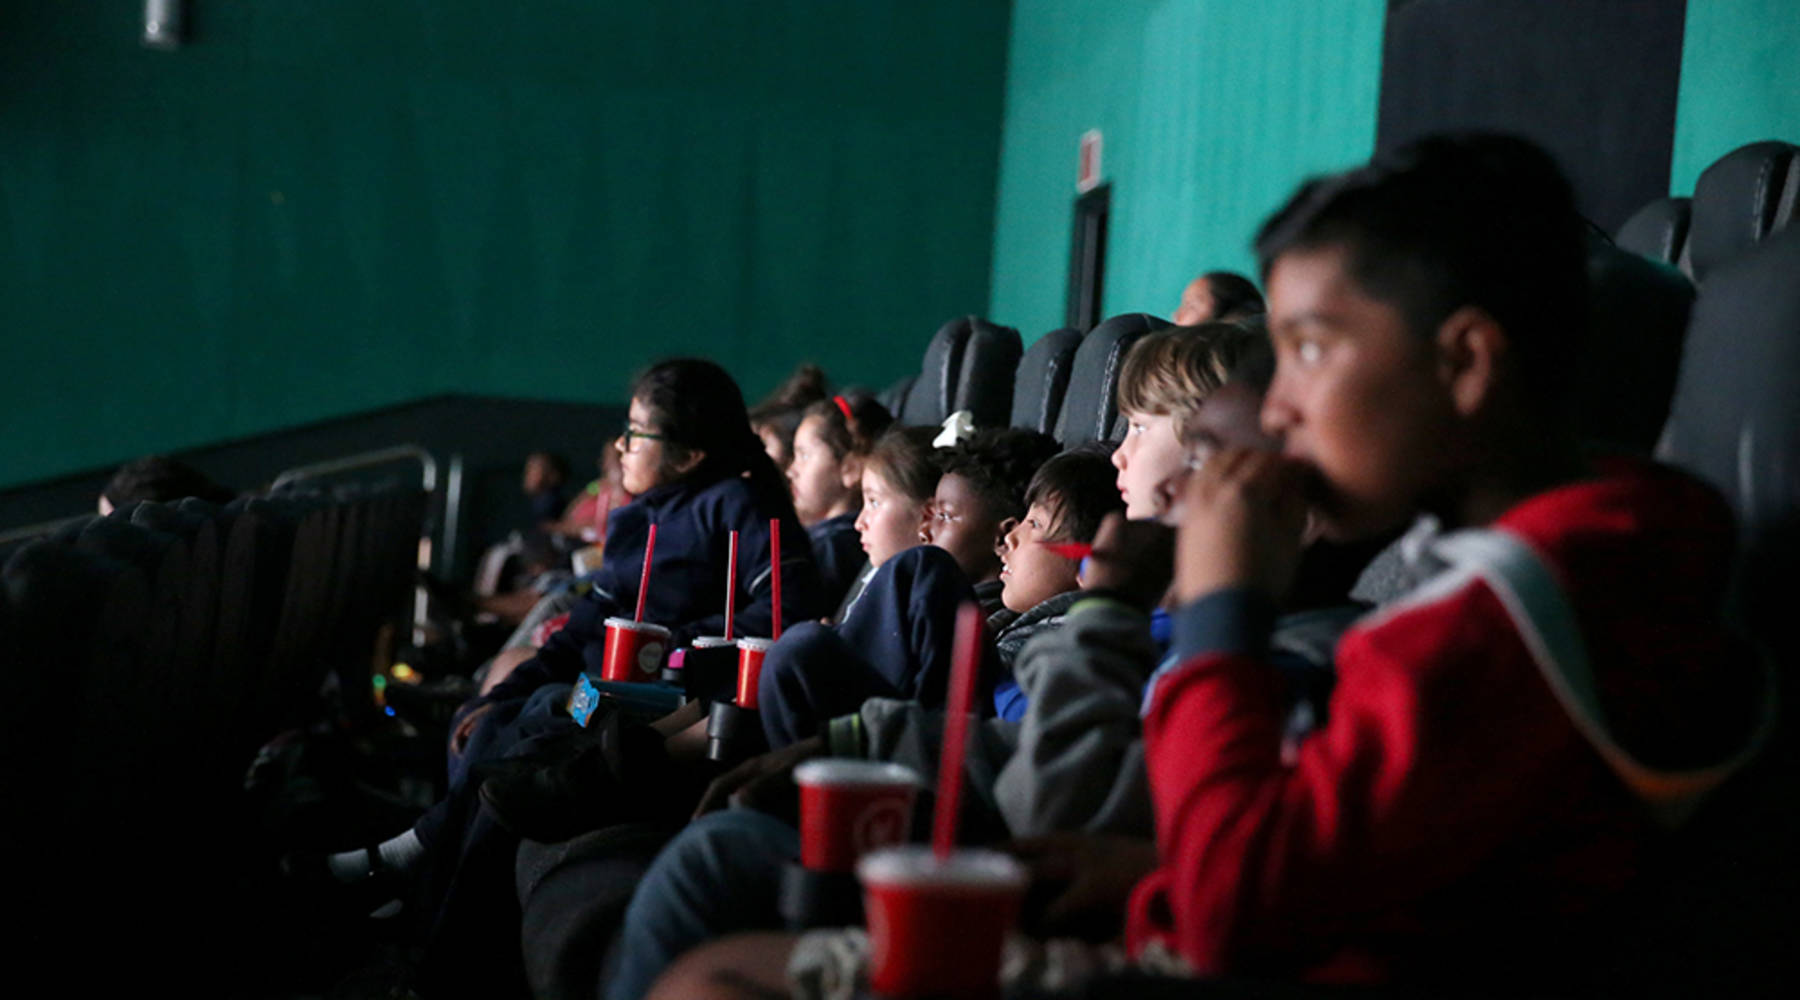 Why getting your movie into theaters can be difficult